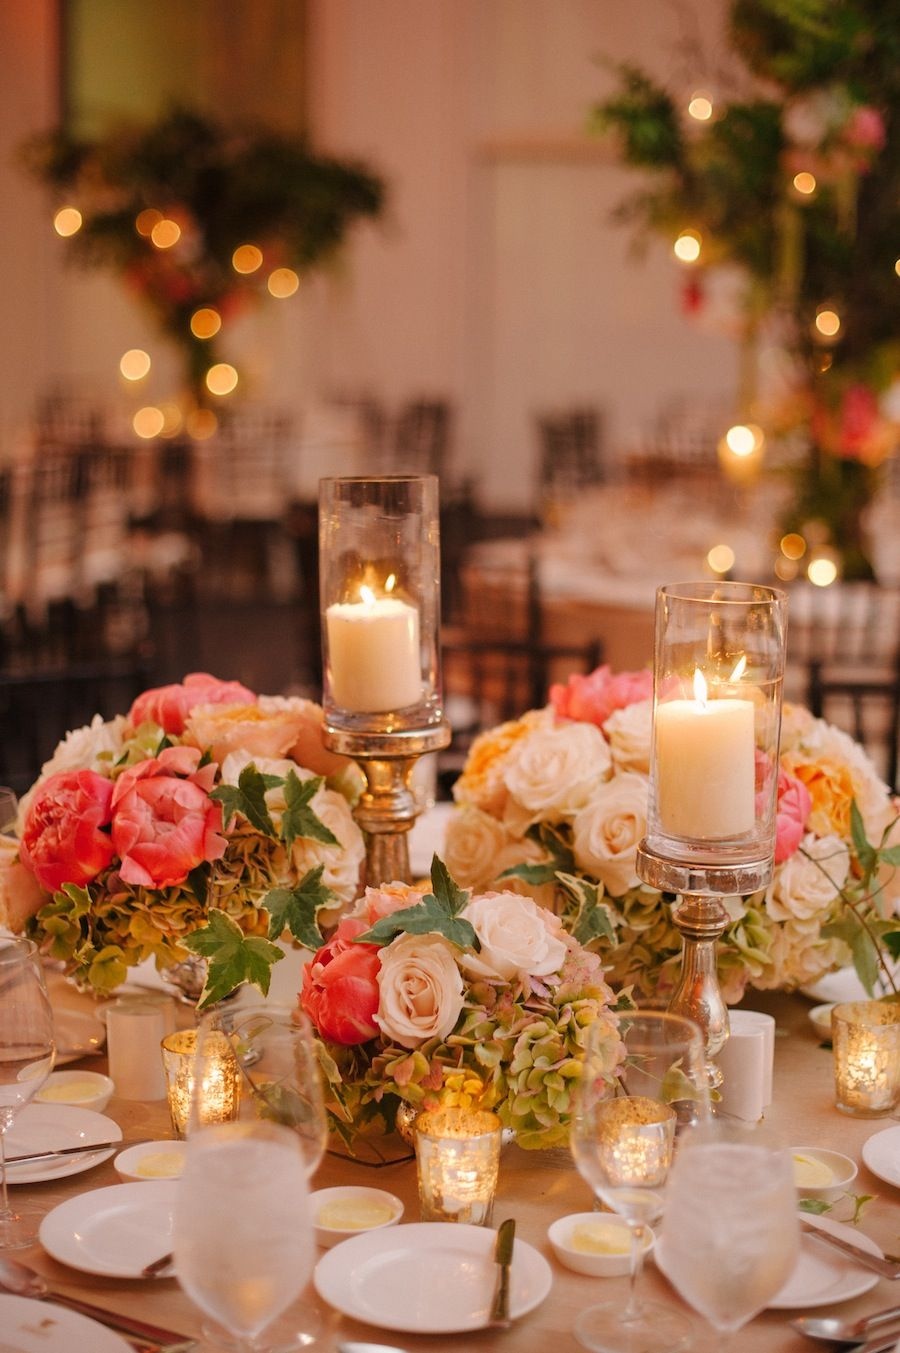 Pin By Cobblestone Farms On Table Arrangements In 2019 Pinterest